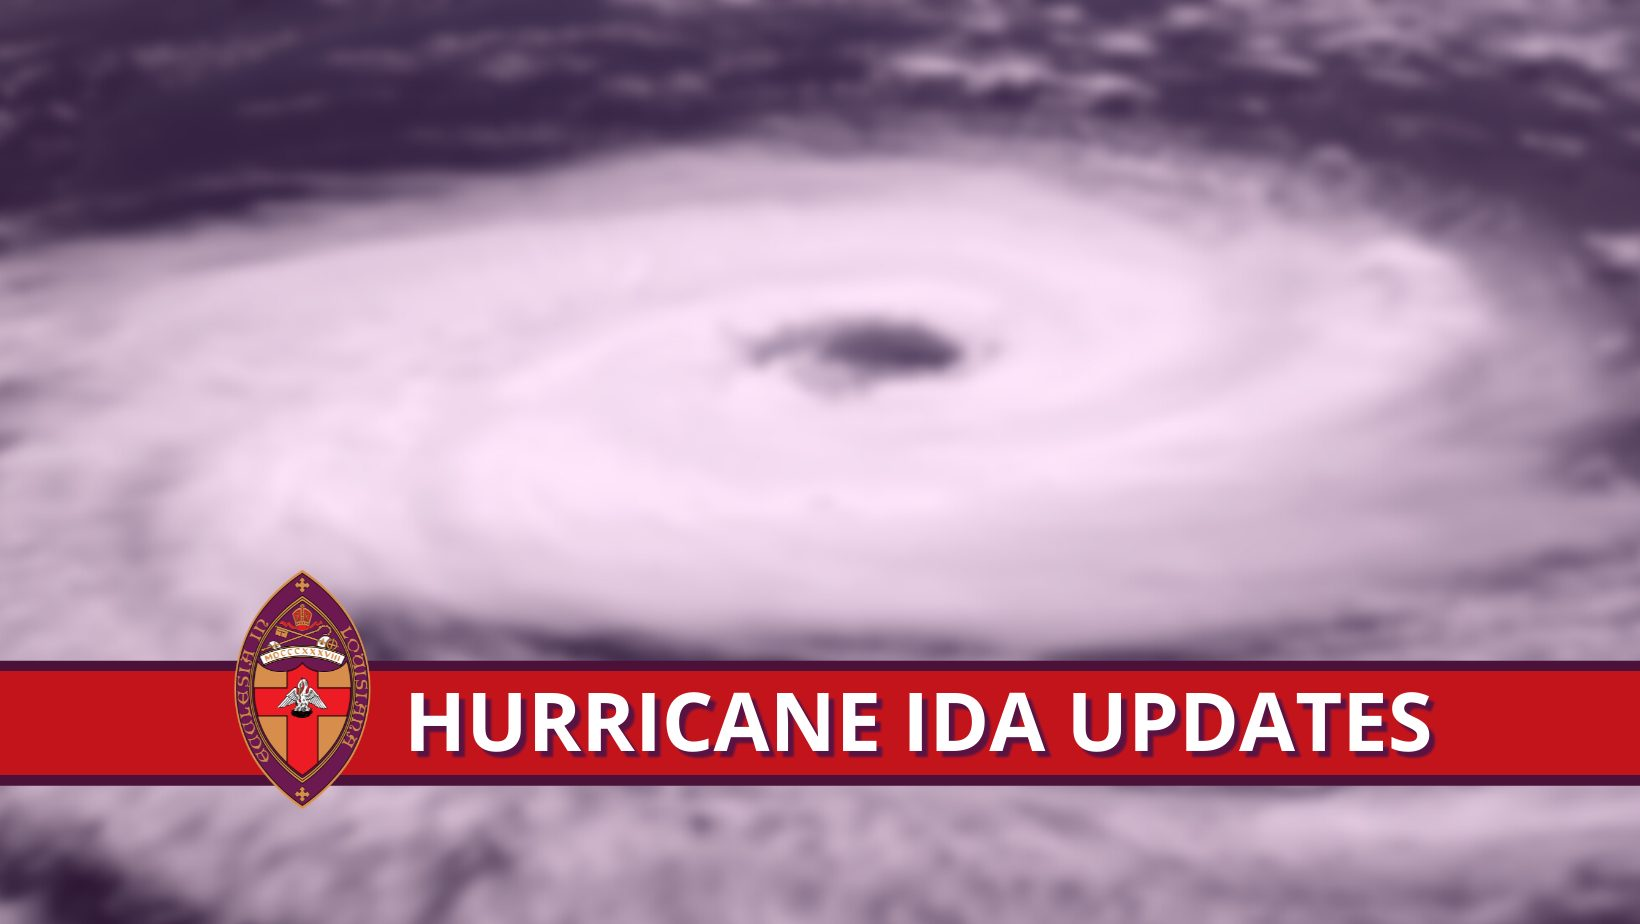 Hurricane Ida: Relief Efforts & Damage Assessment to Church Property